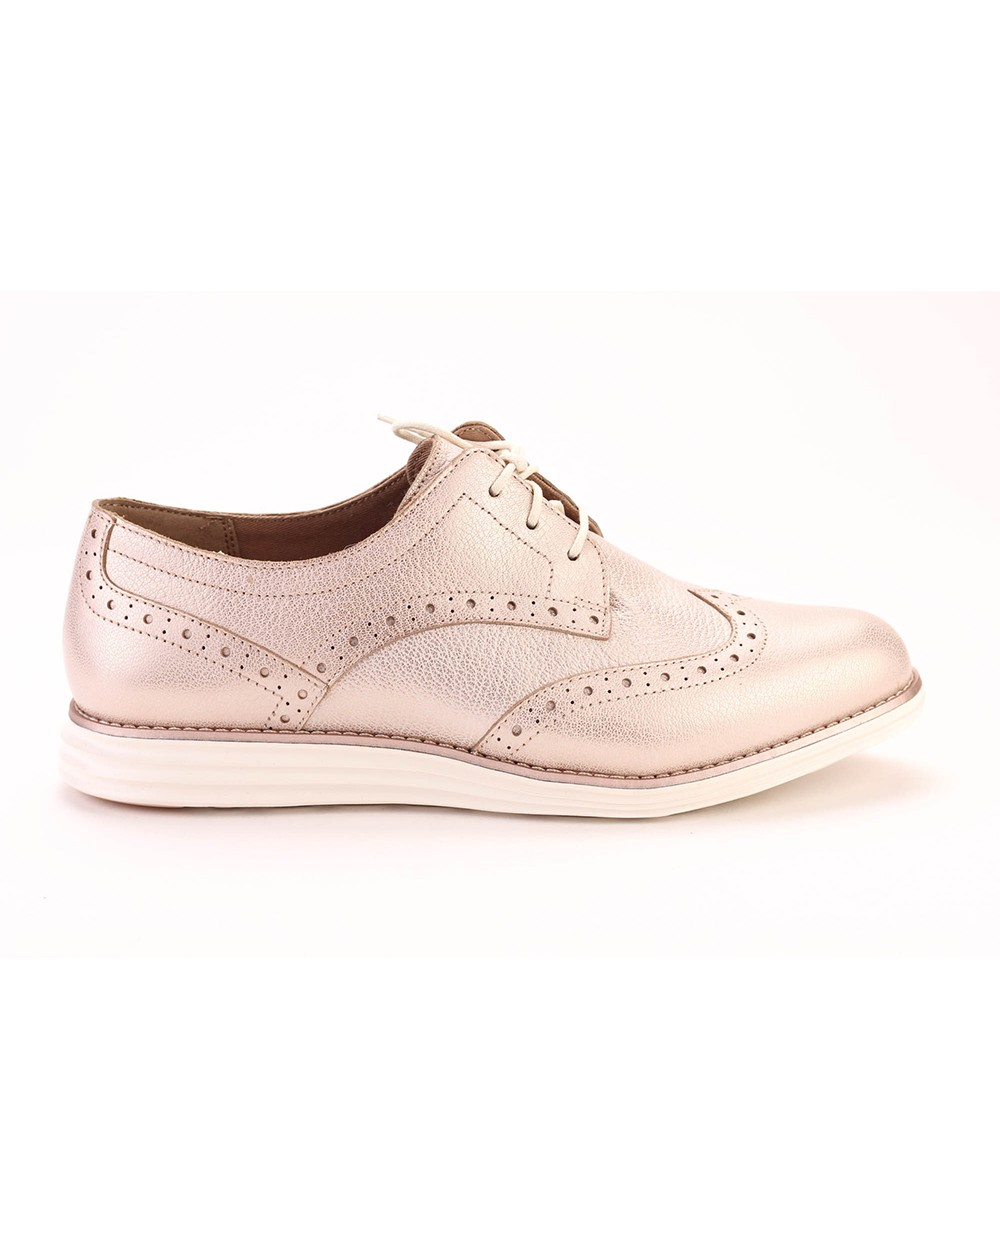 COLE HAAN W02997 - Zapatos Cole Haan